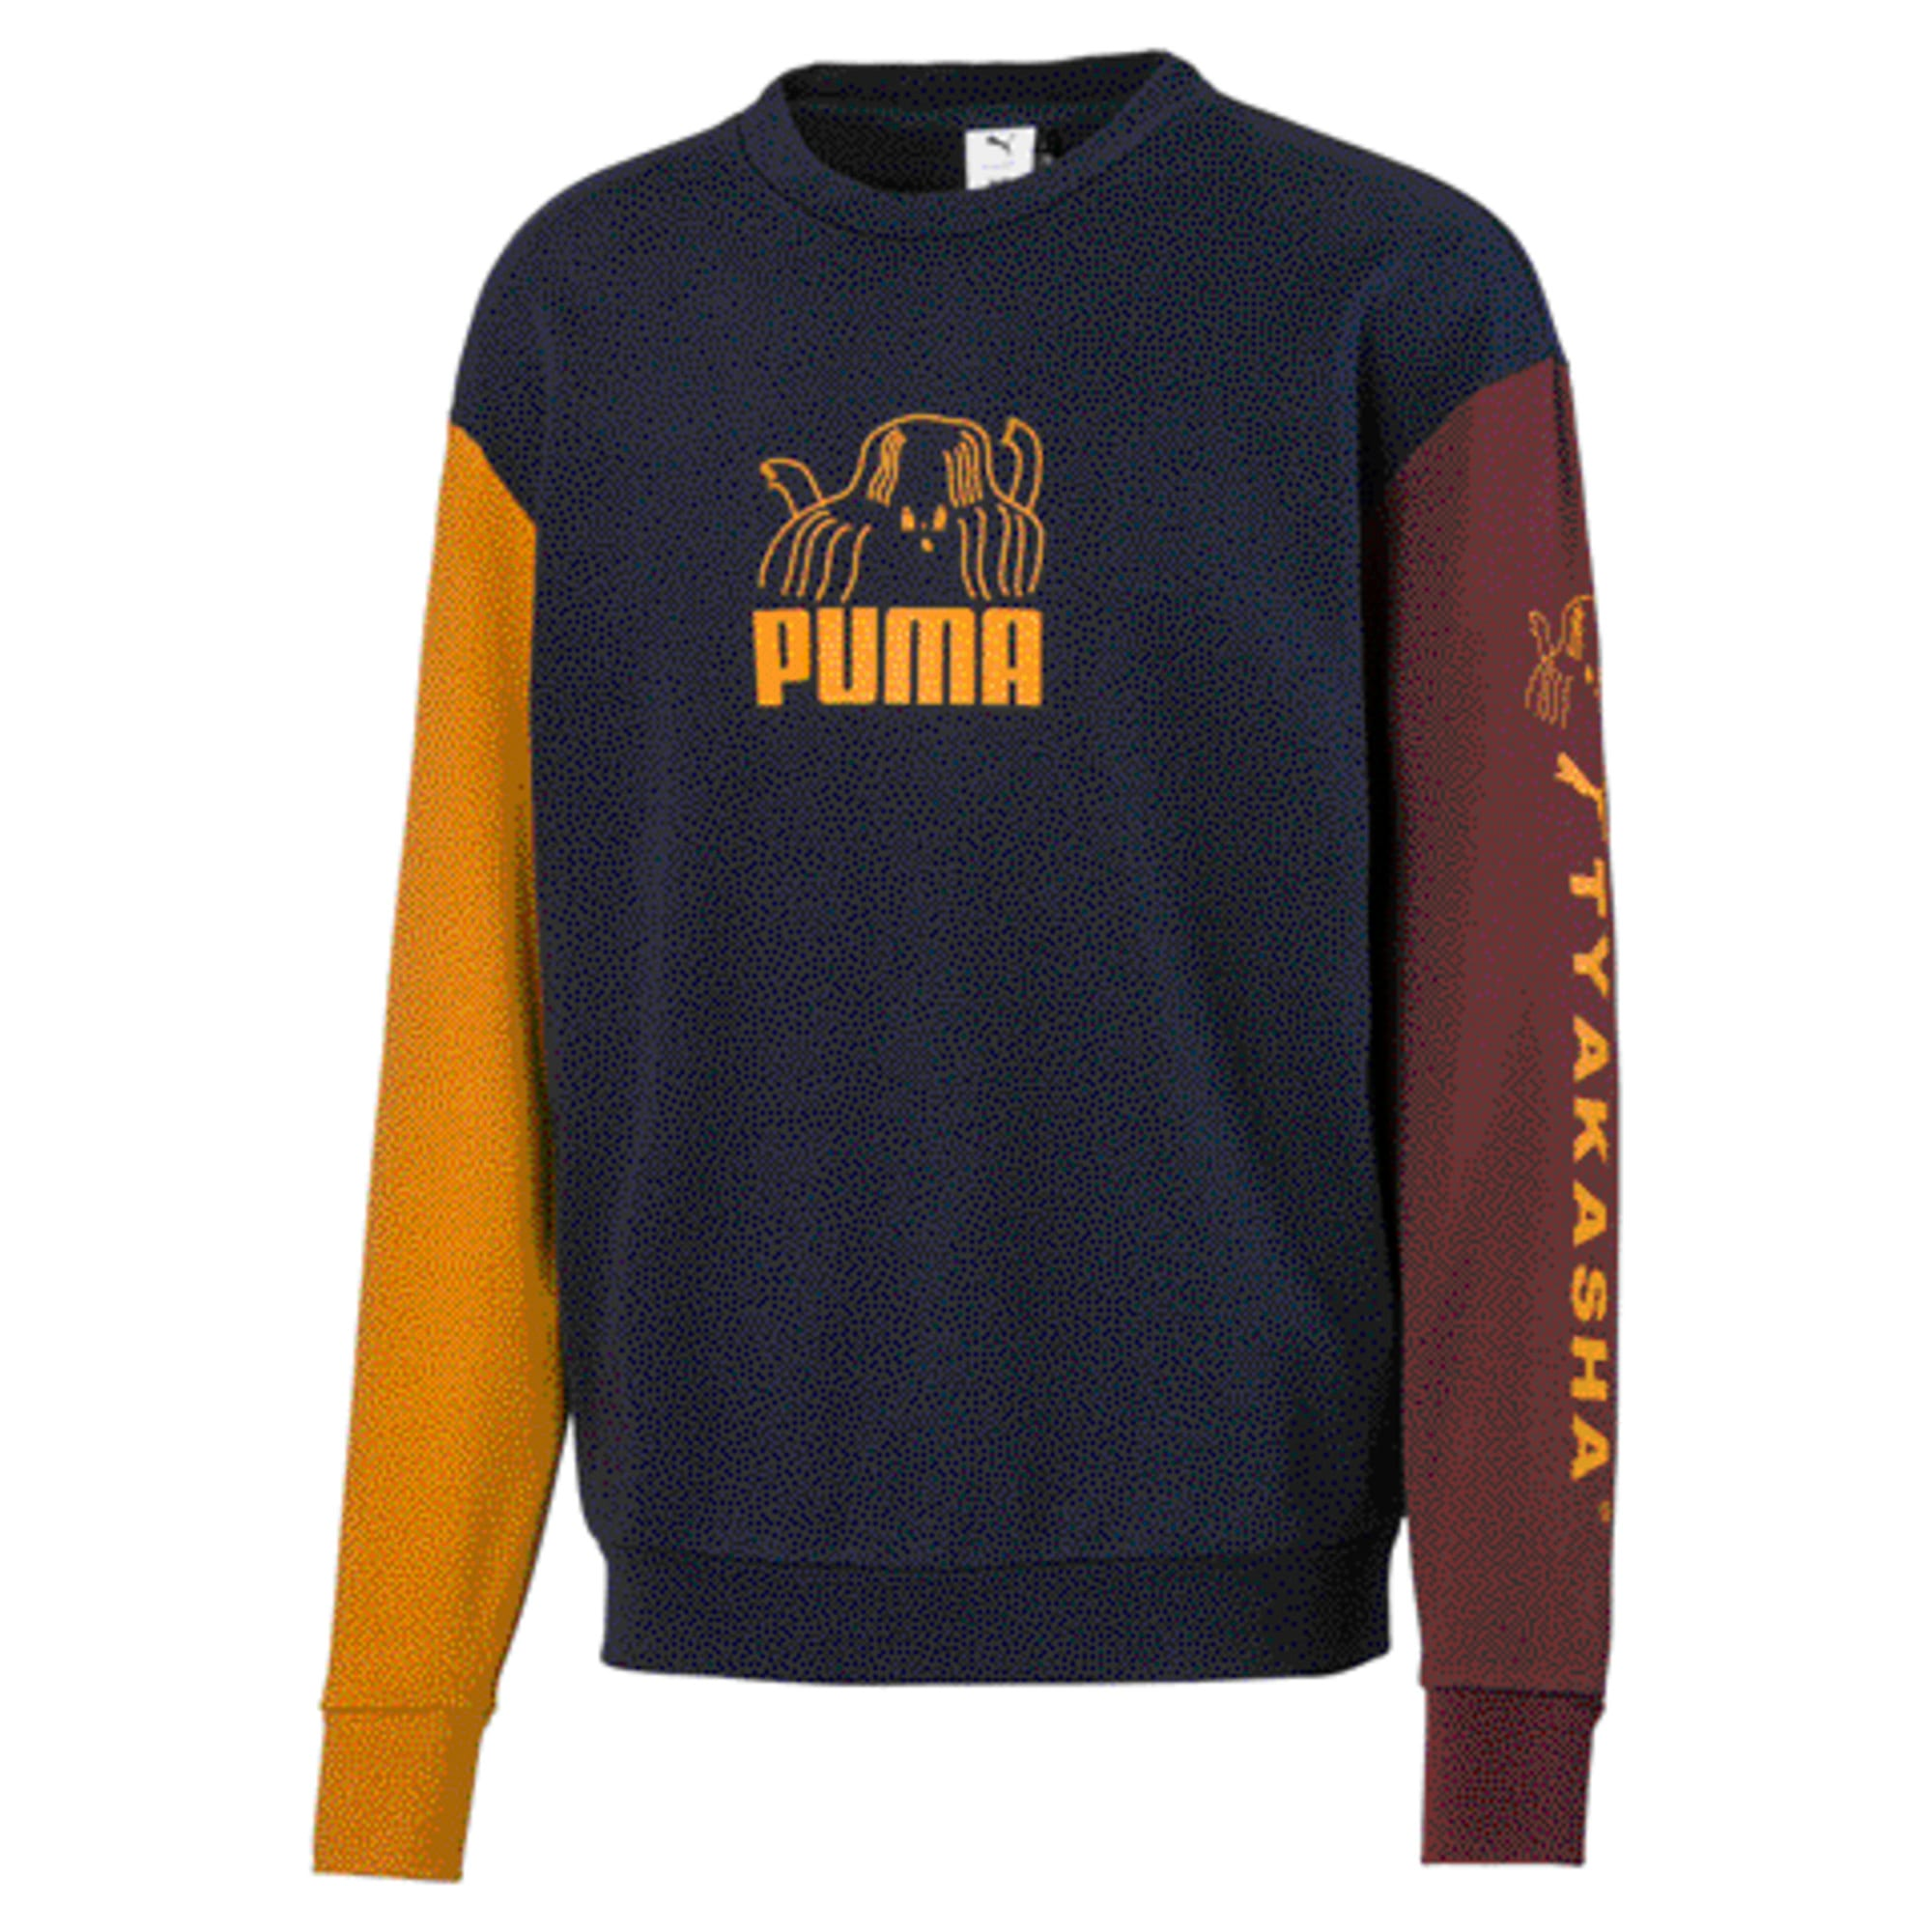 Thumbnail 1 of PUMA x TYAKASHA Crew Men's Sweater, Peacoat, medium